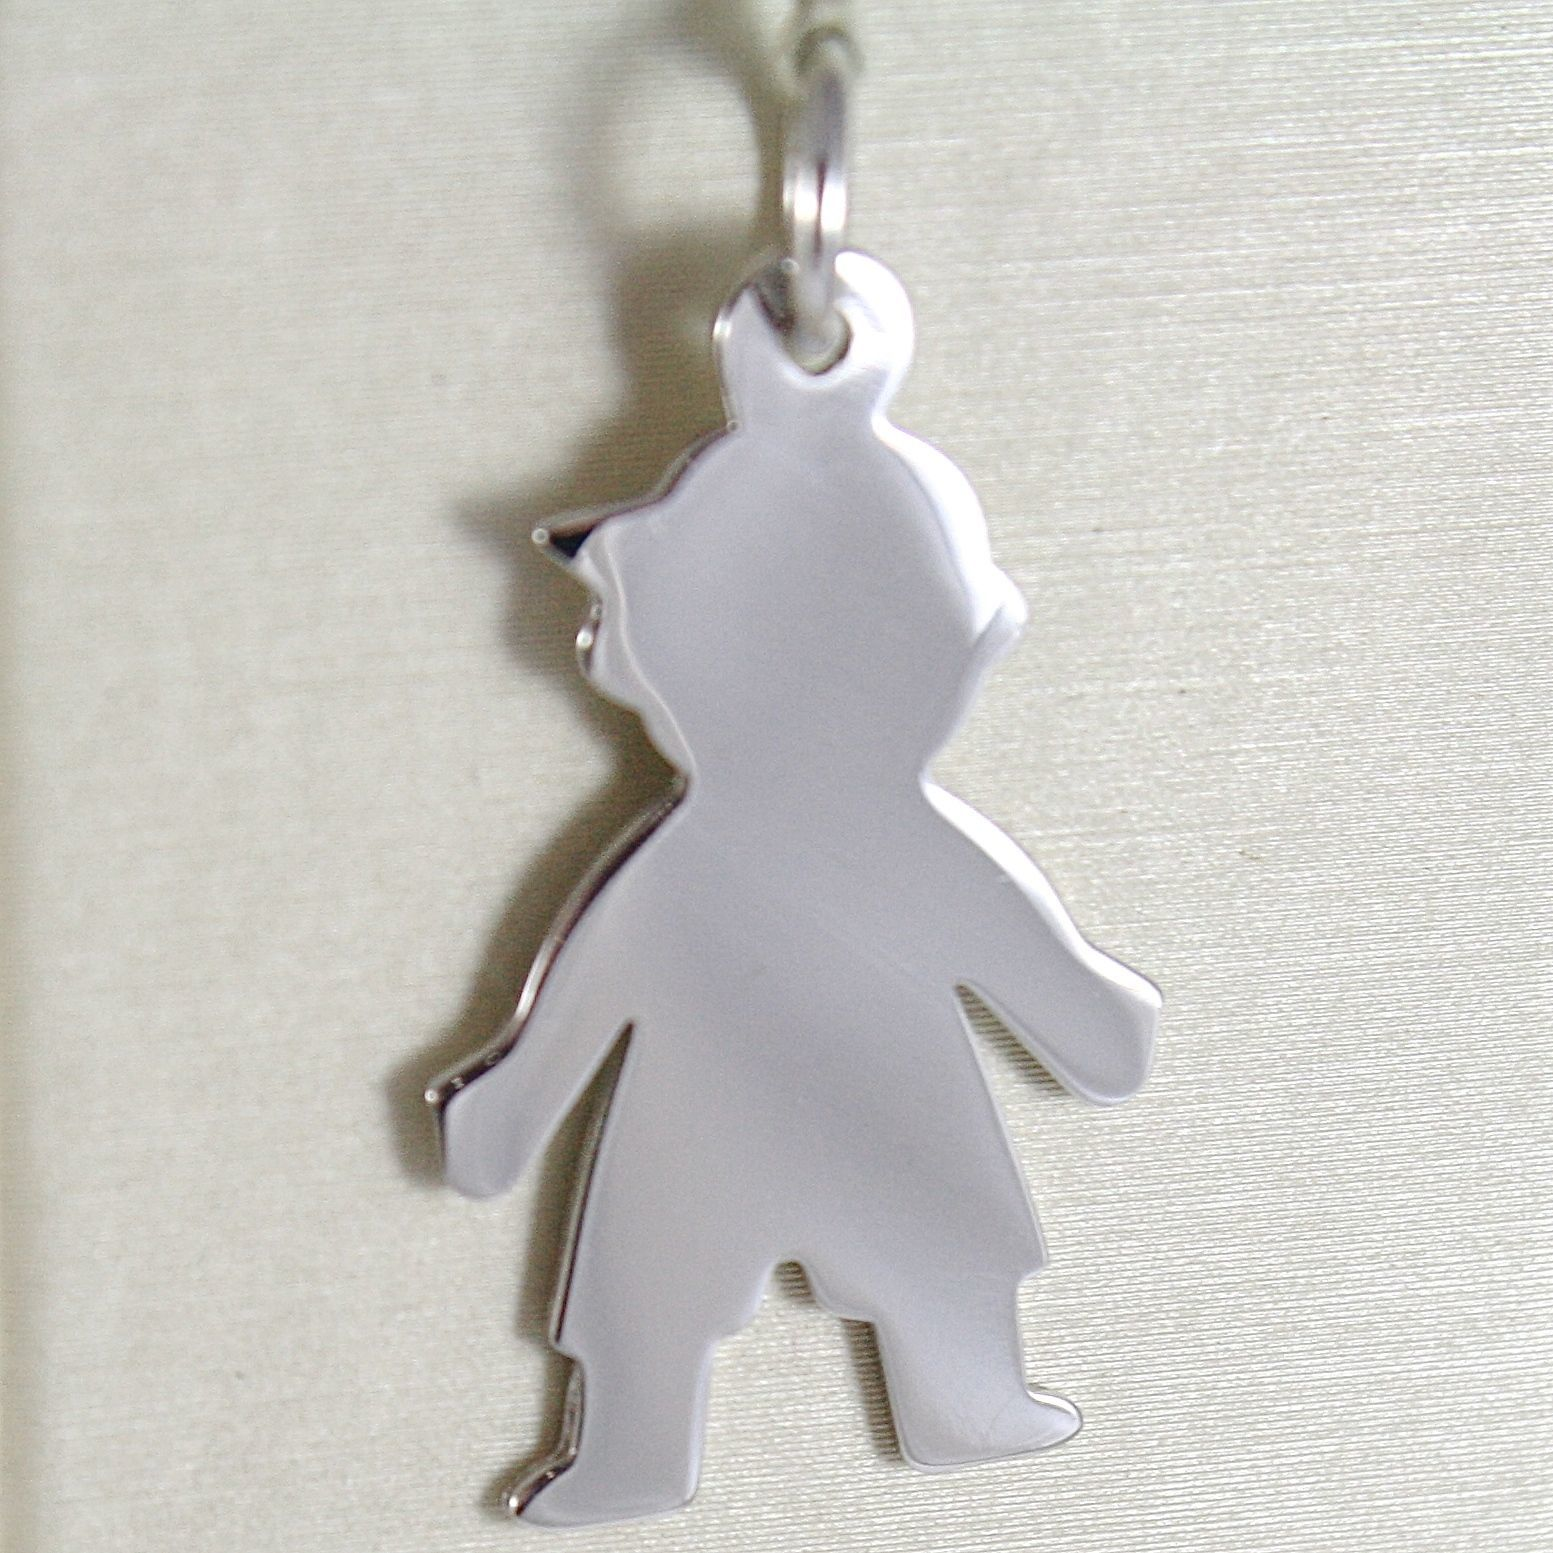 WHITE GOLD PENDANT 750 18K, CHILD, CHILD LONG 3.2 CM, WITH CAP